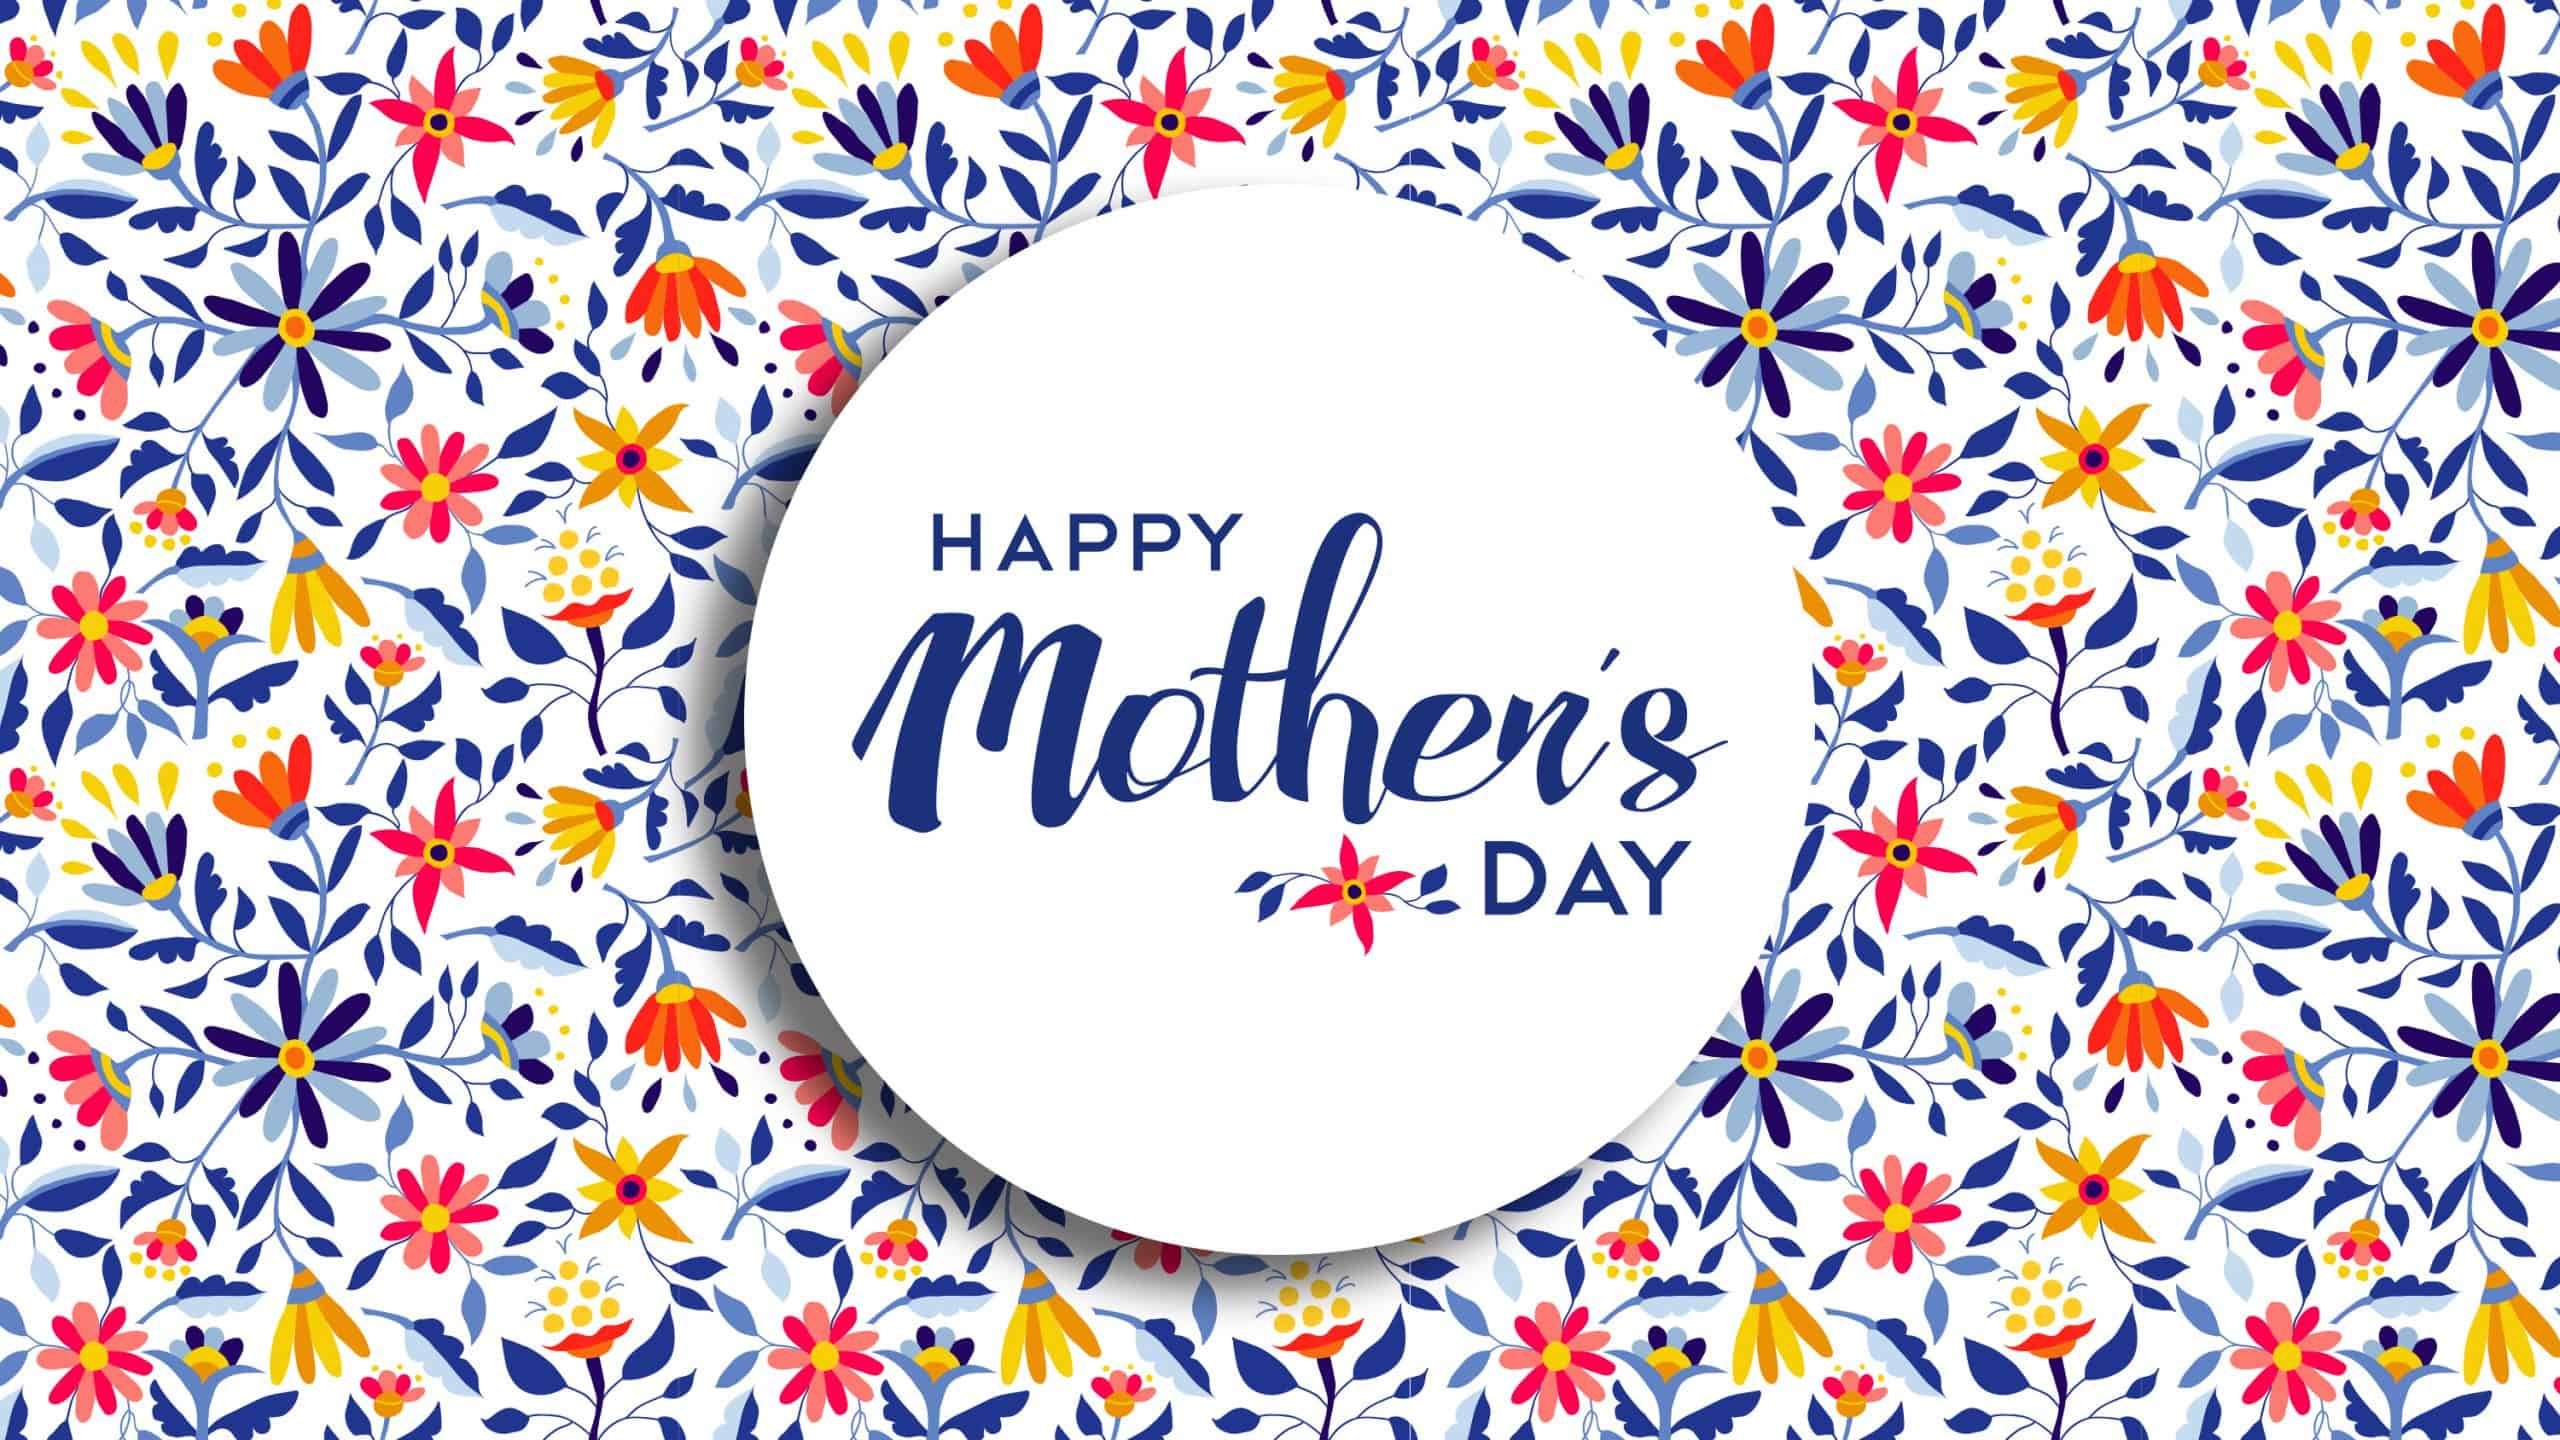 Mother's Day 2020 - What My Mother Did Right